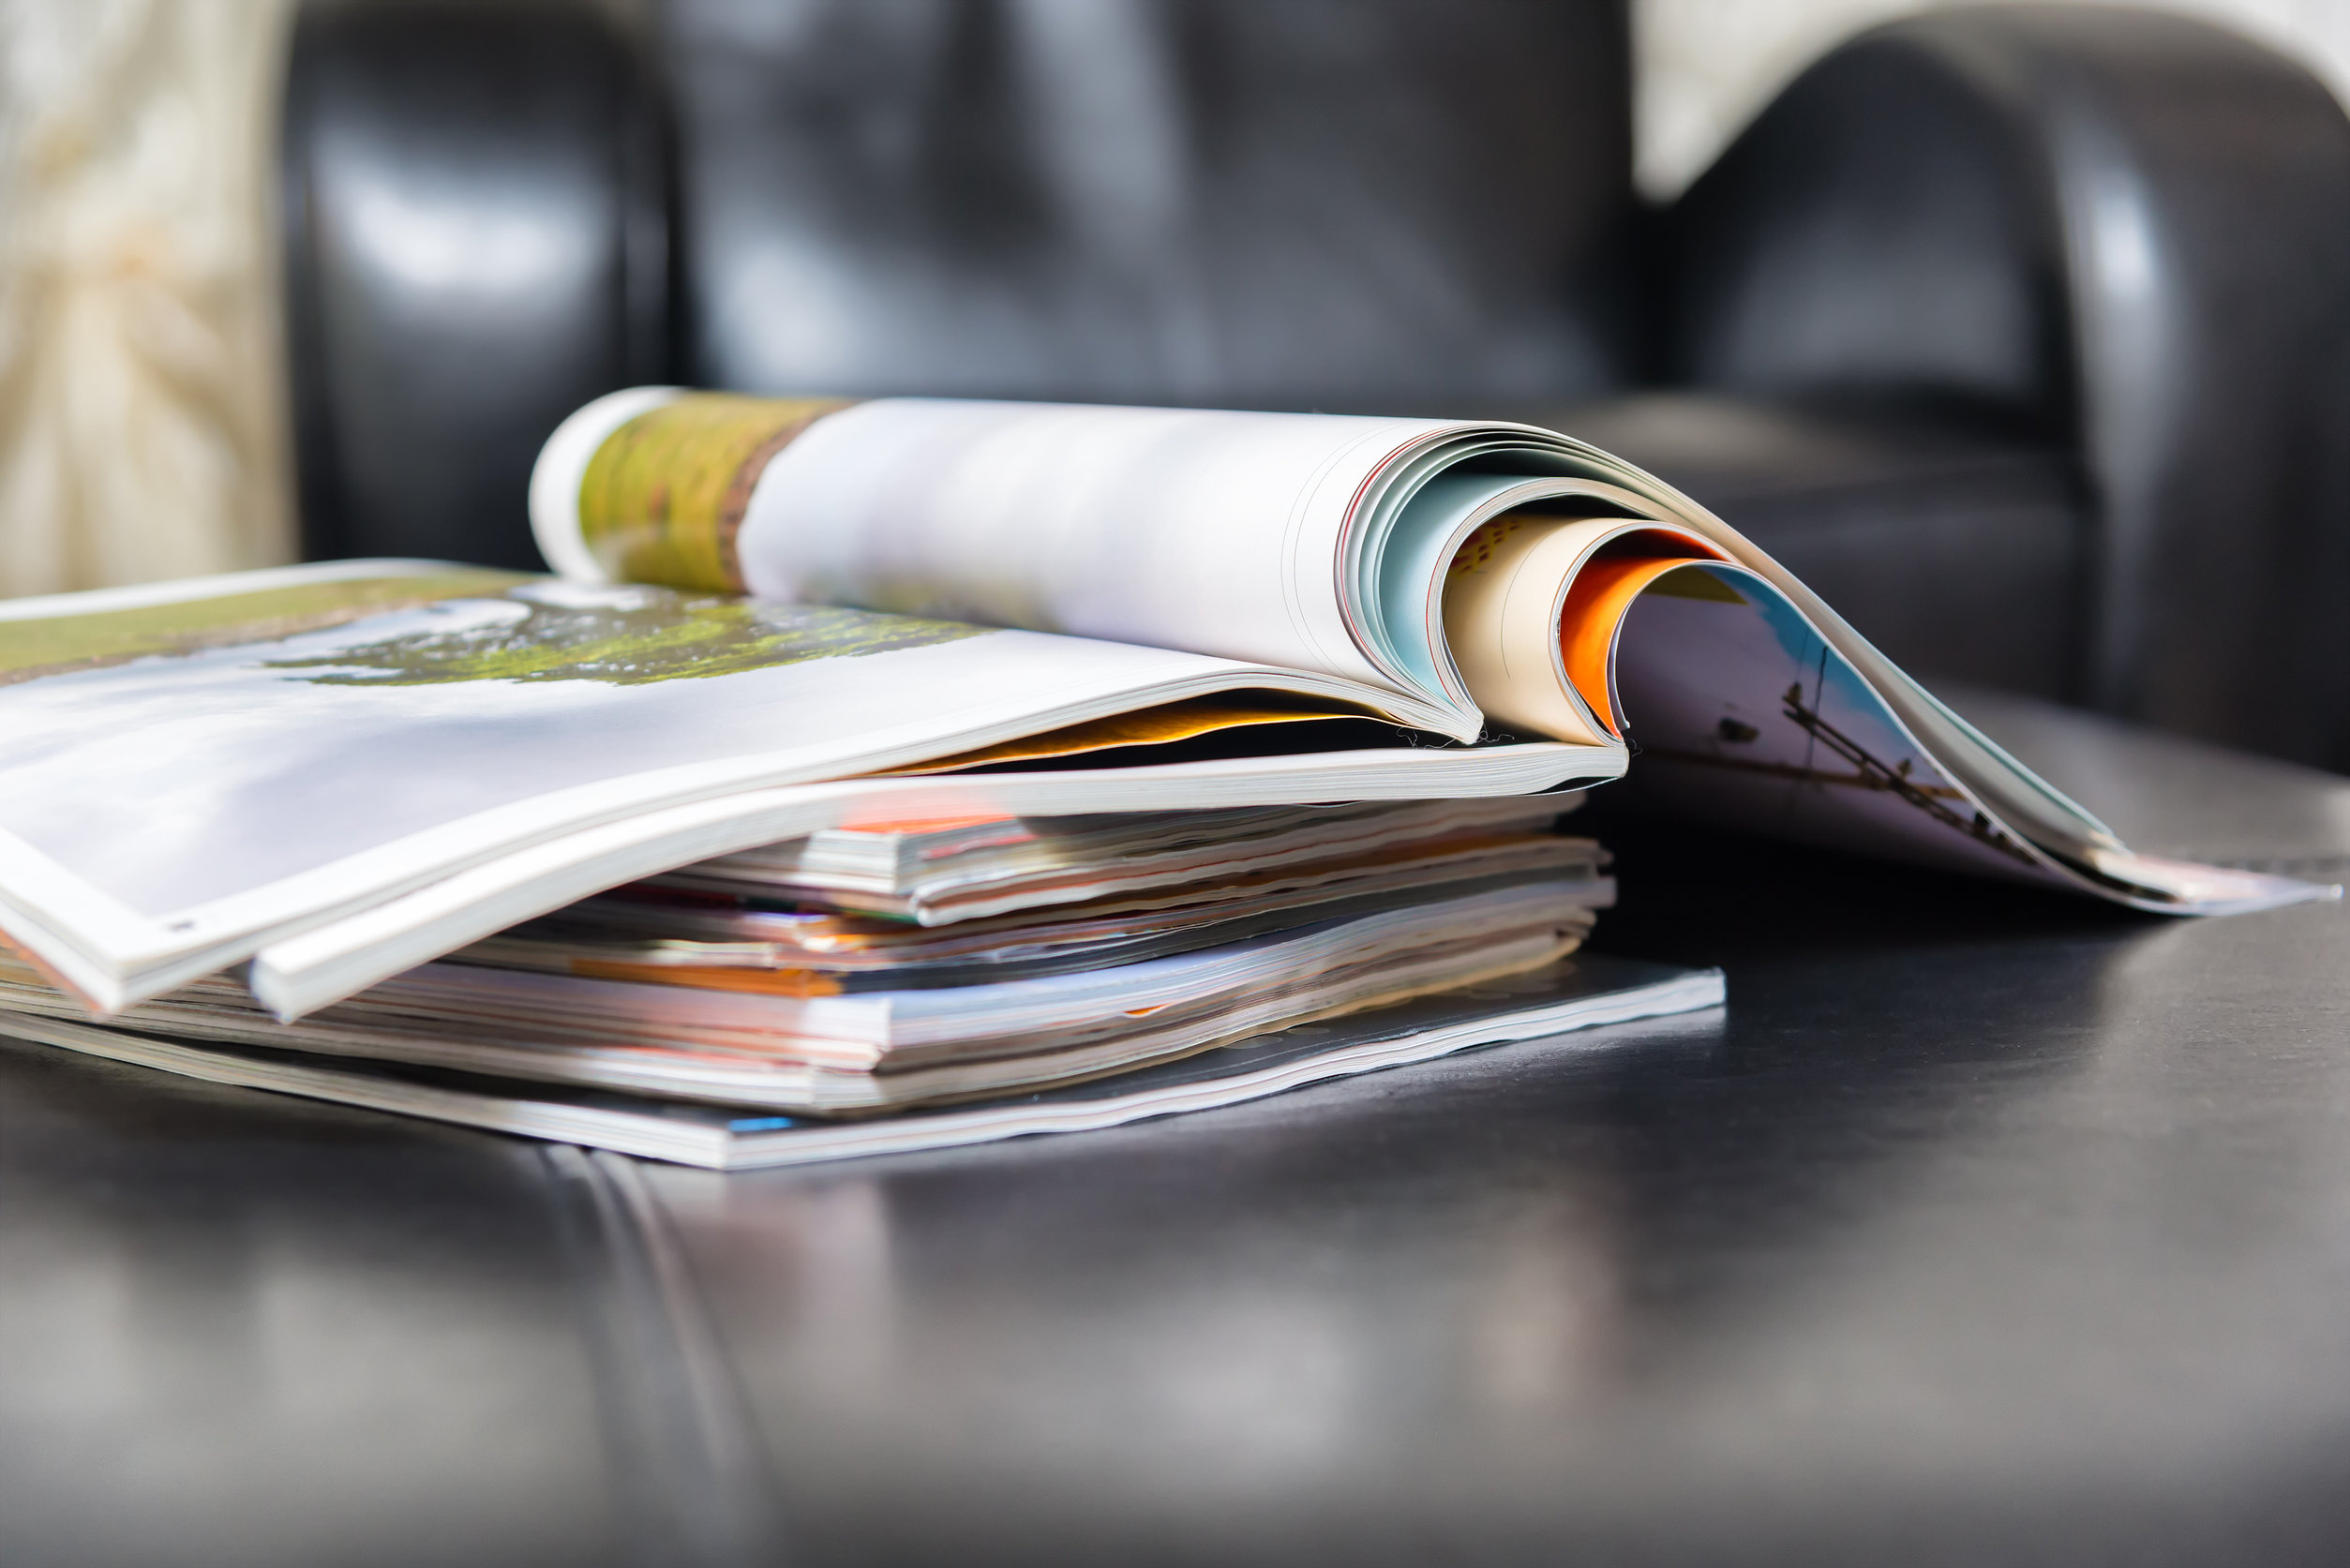 large print magazines for visually impaired